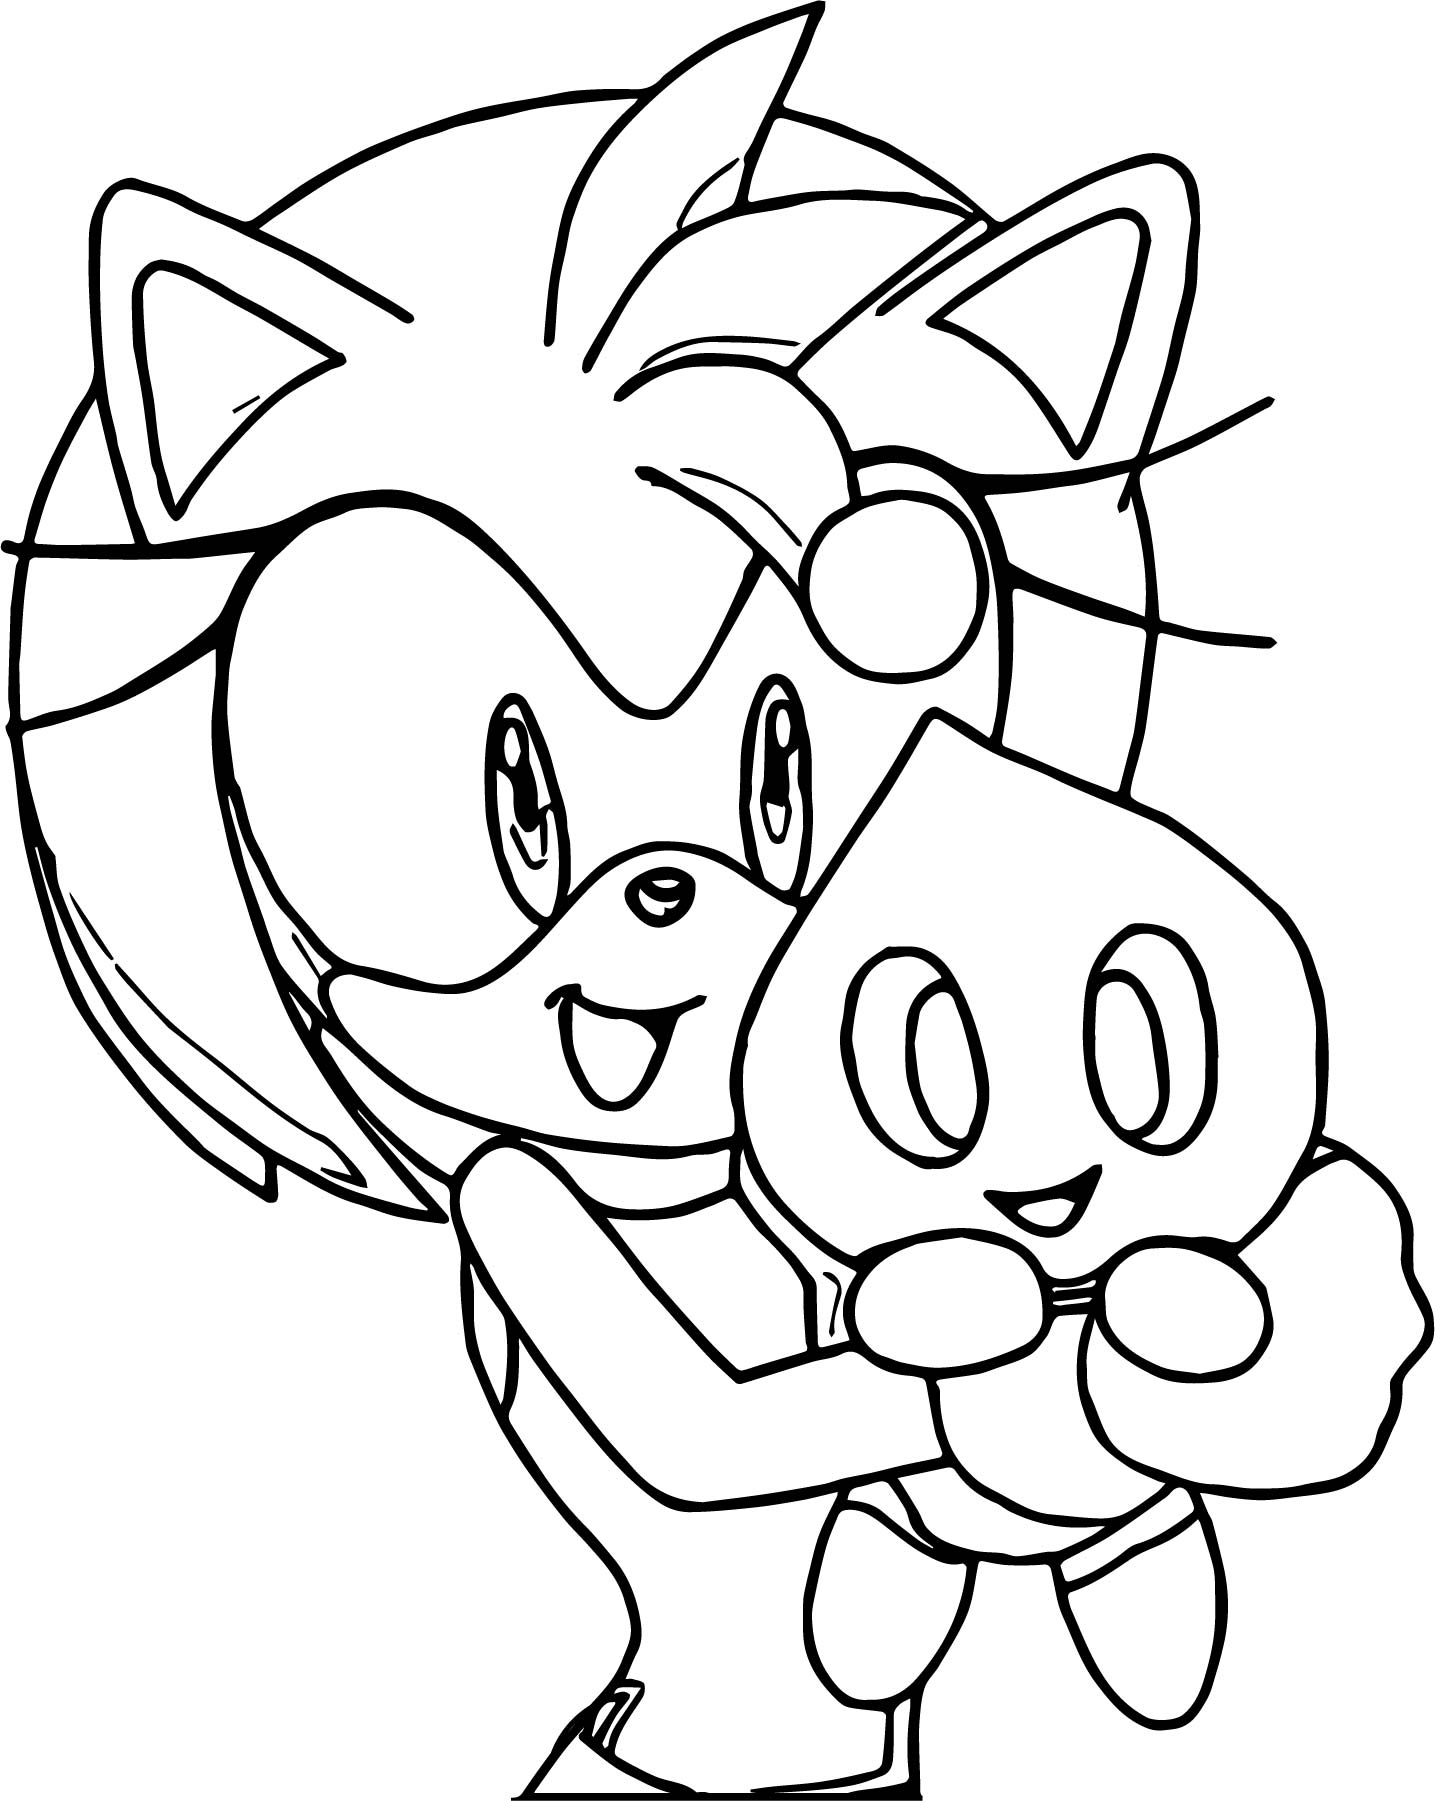 Amy Rose And Funny Friends Coloring Page